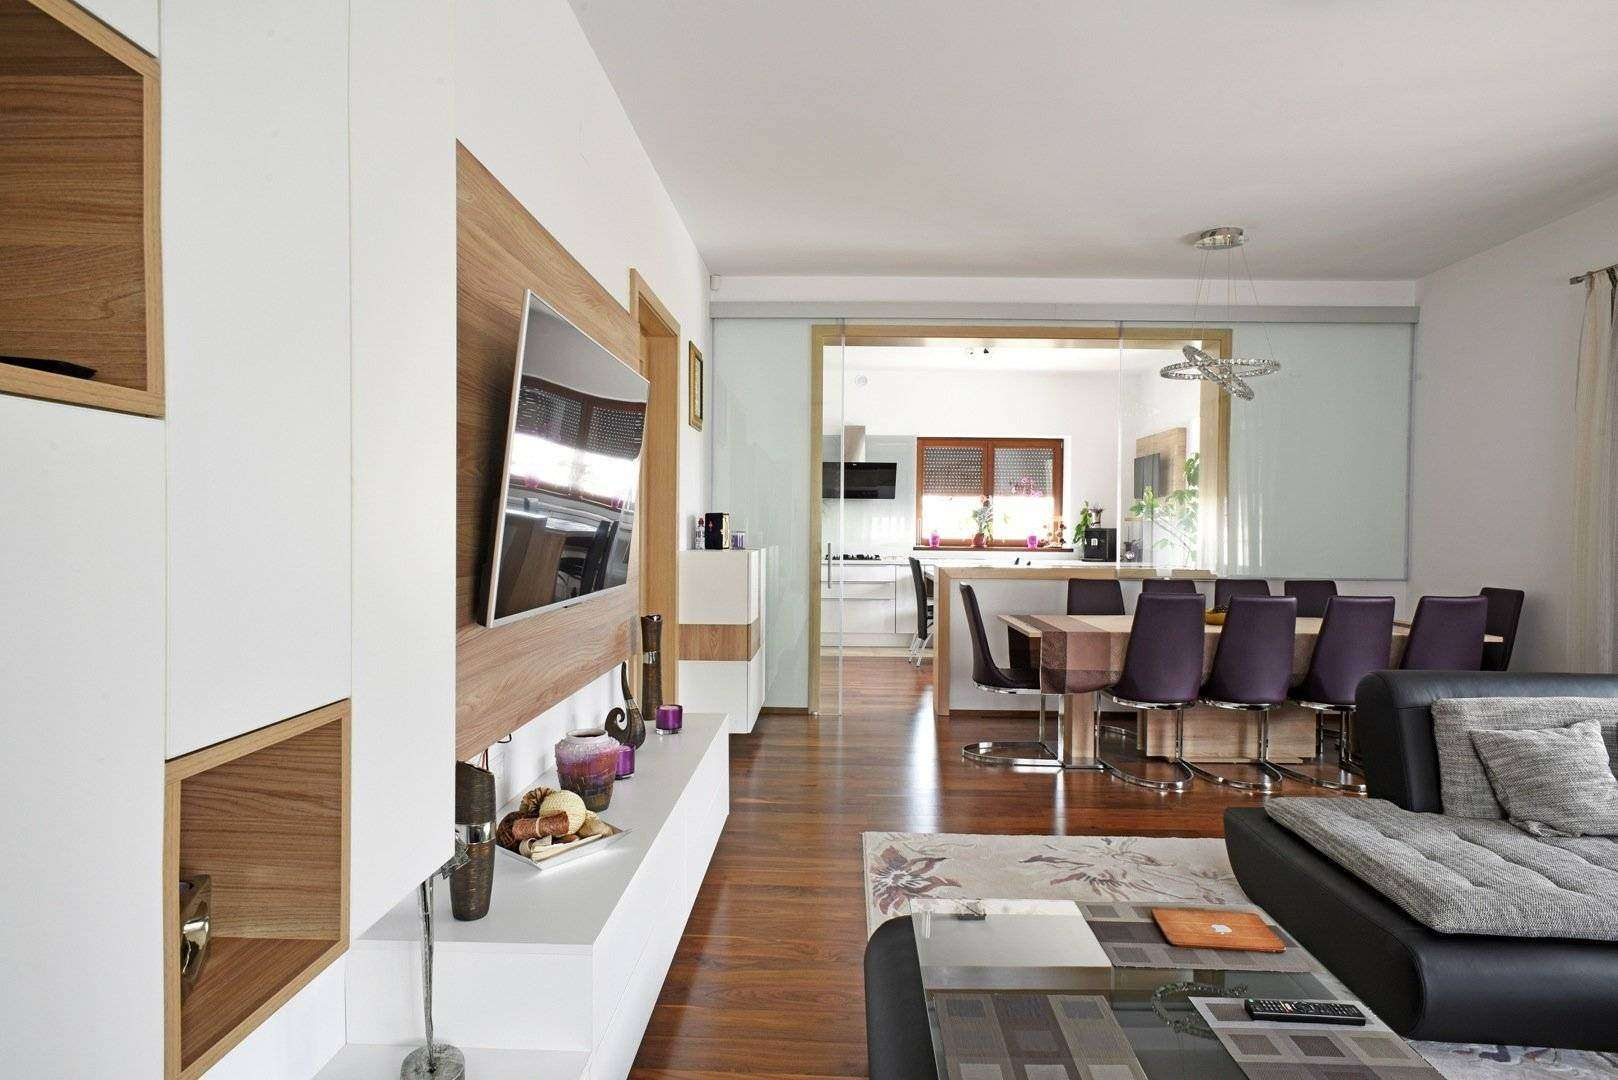 <a href=&quot;amenajare open space modern bucatarie cu living &quot;>amenajare open space bucatarie cu living<img src='http://www.unican.ro/wp-content/themes/vita/img/dreapta.png' class='pull-right hidden-xs' style='margin-right:-10px;margin-top:-10px; max-height:41px'></a>